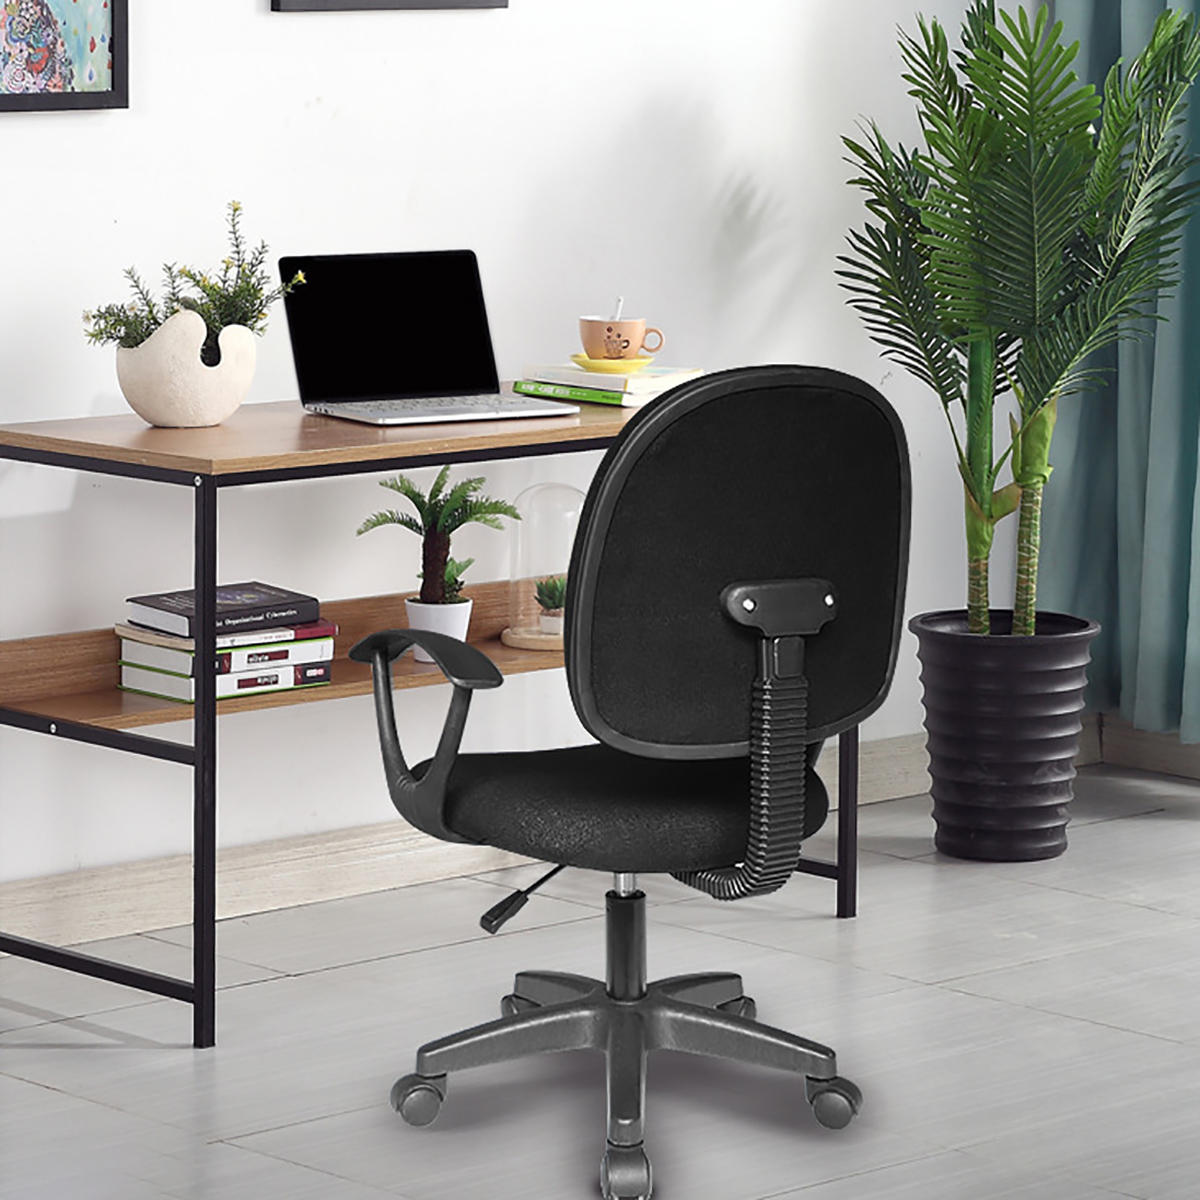 Office Chair Home Study Work Lift